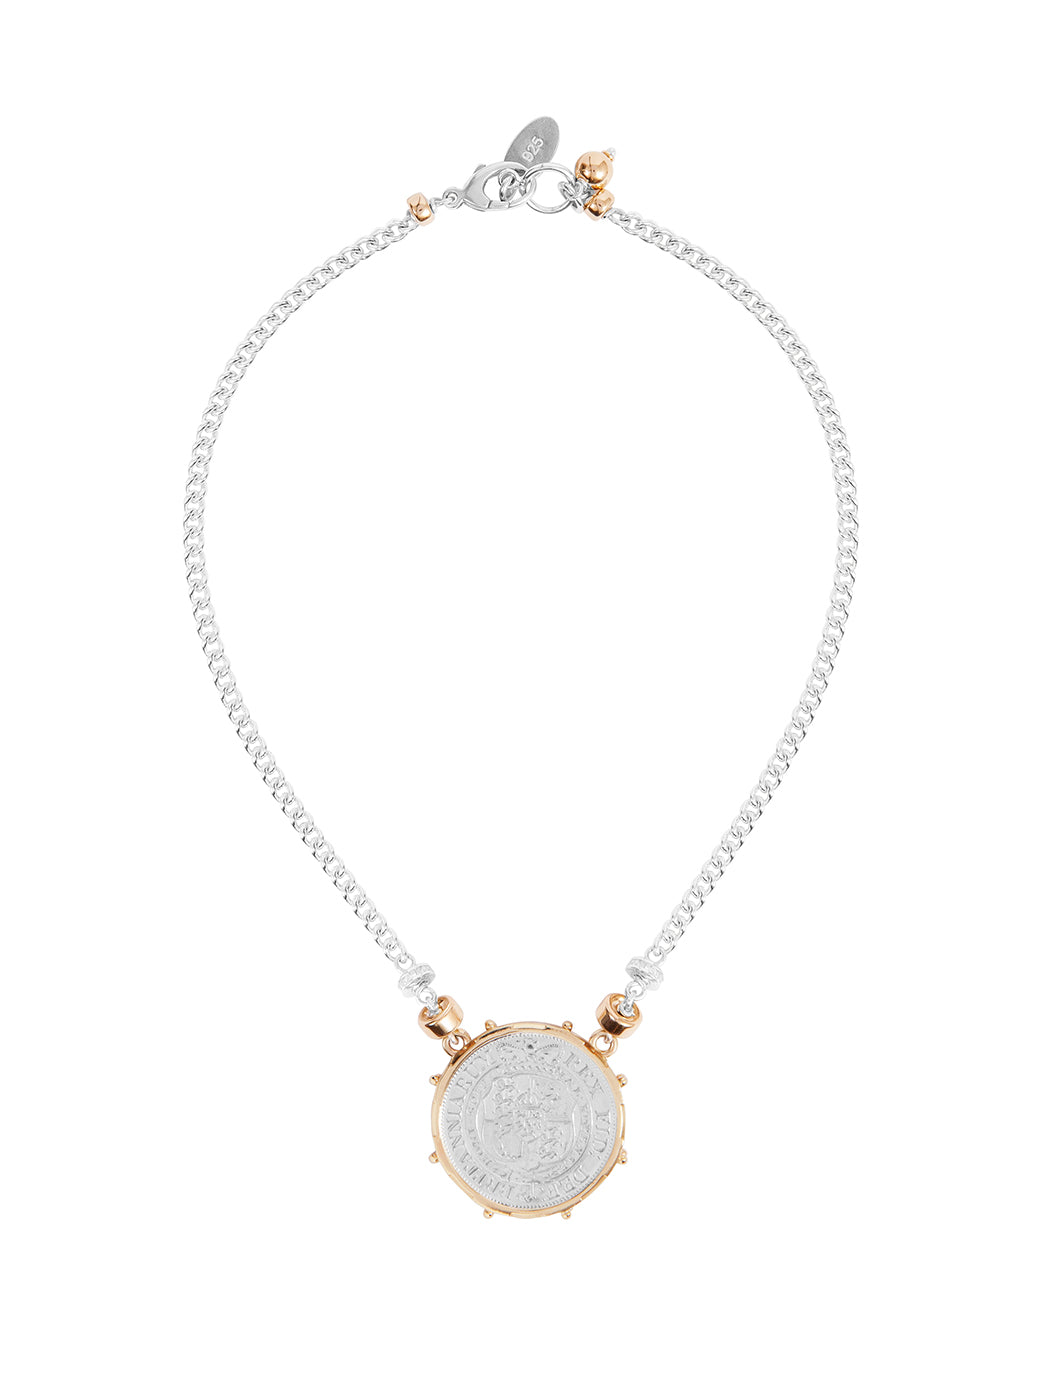 Fiorina Jewellery Coronet Necklace Coin